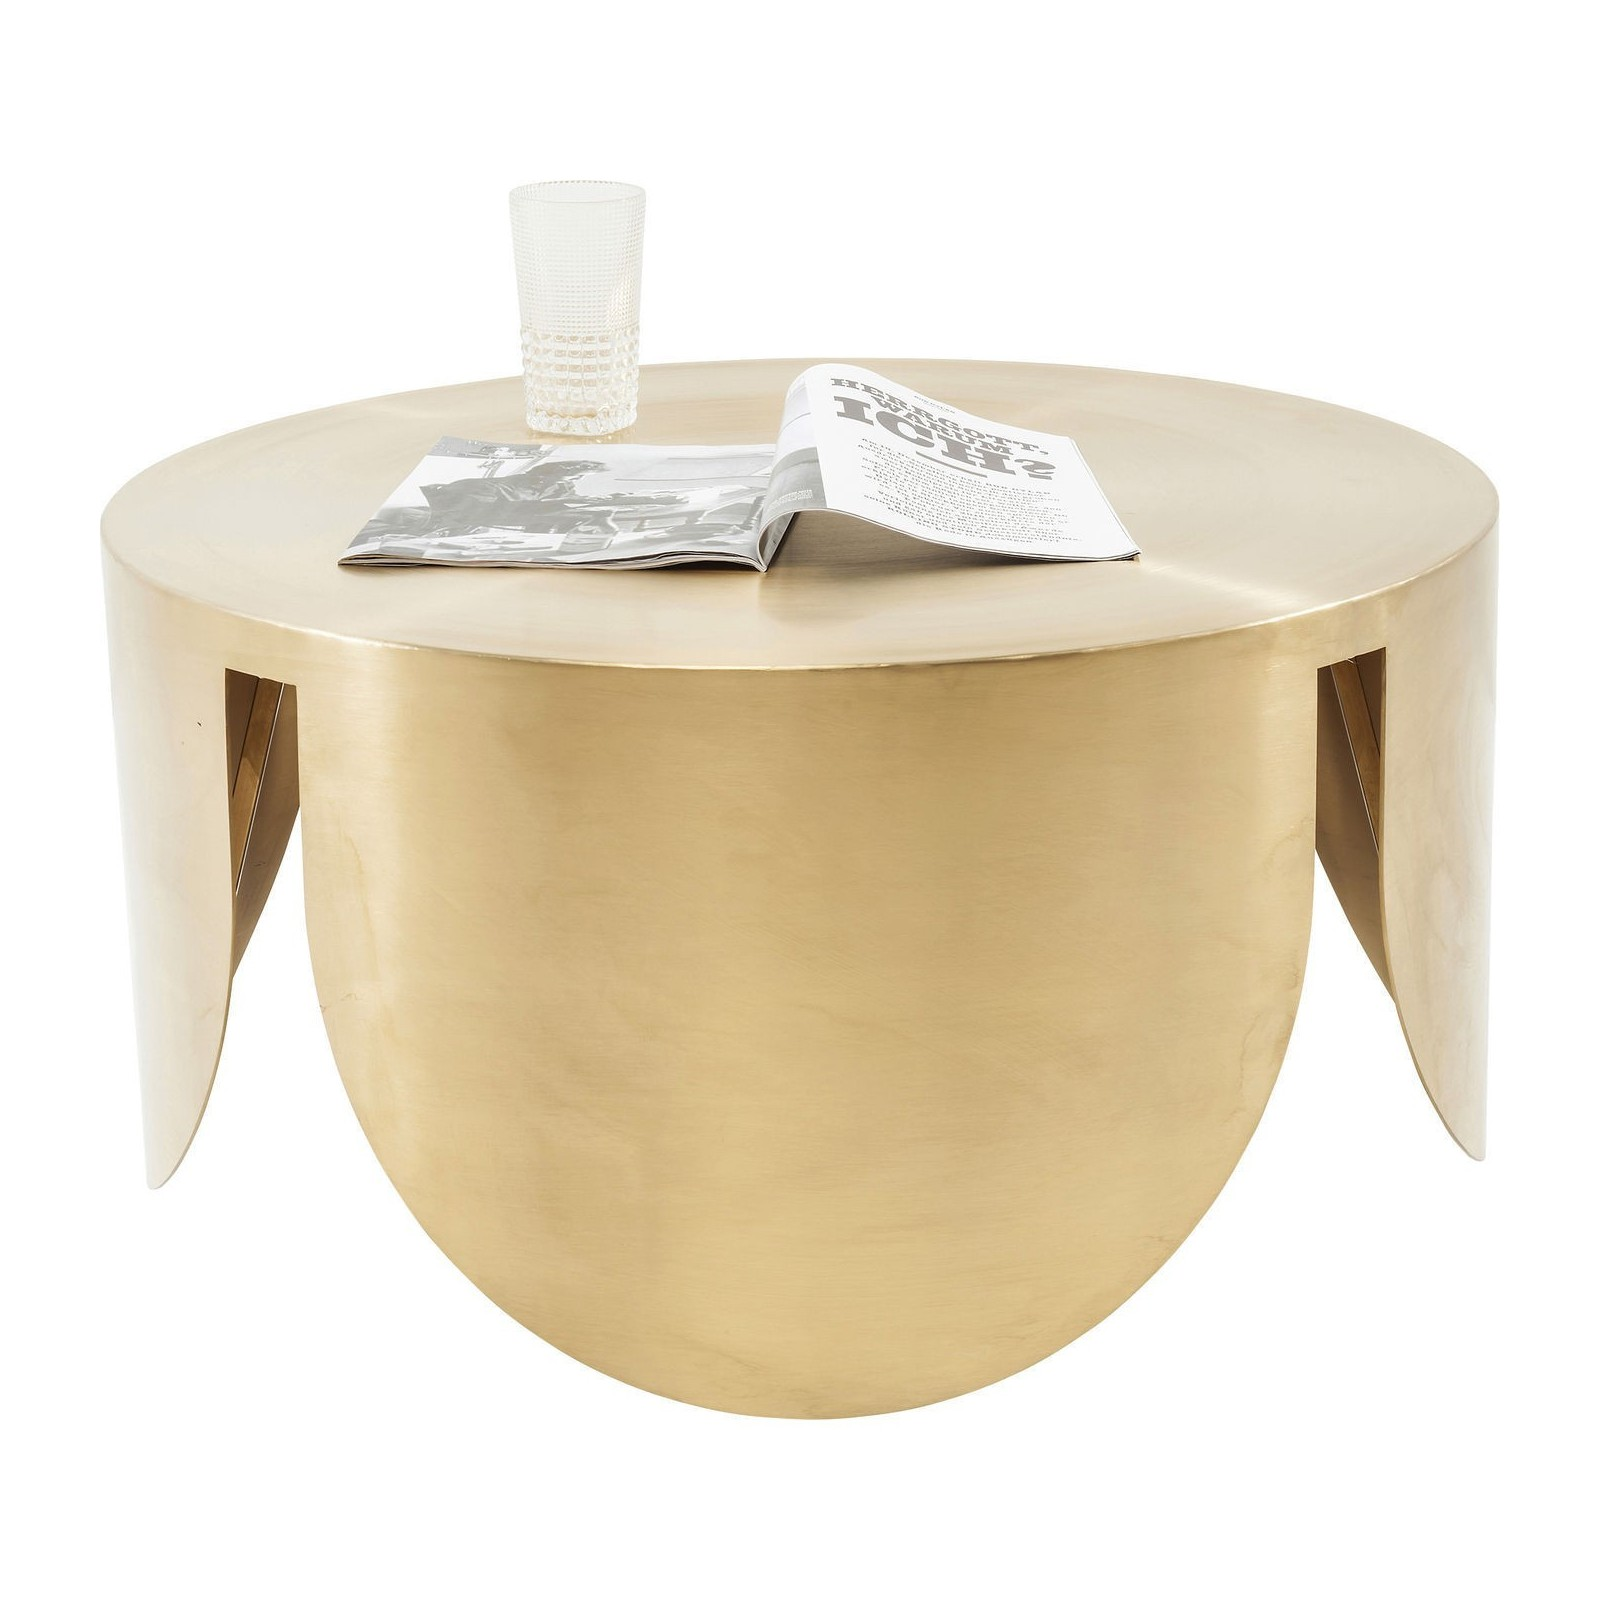 Table basse r tro dor new wave kare design for Table basse design 80 cm